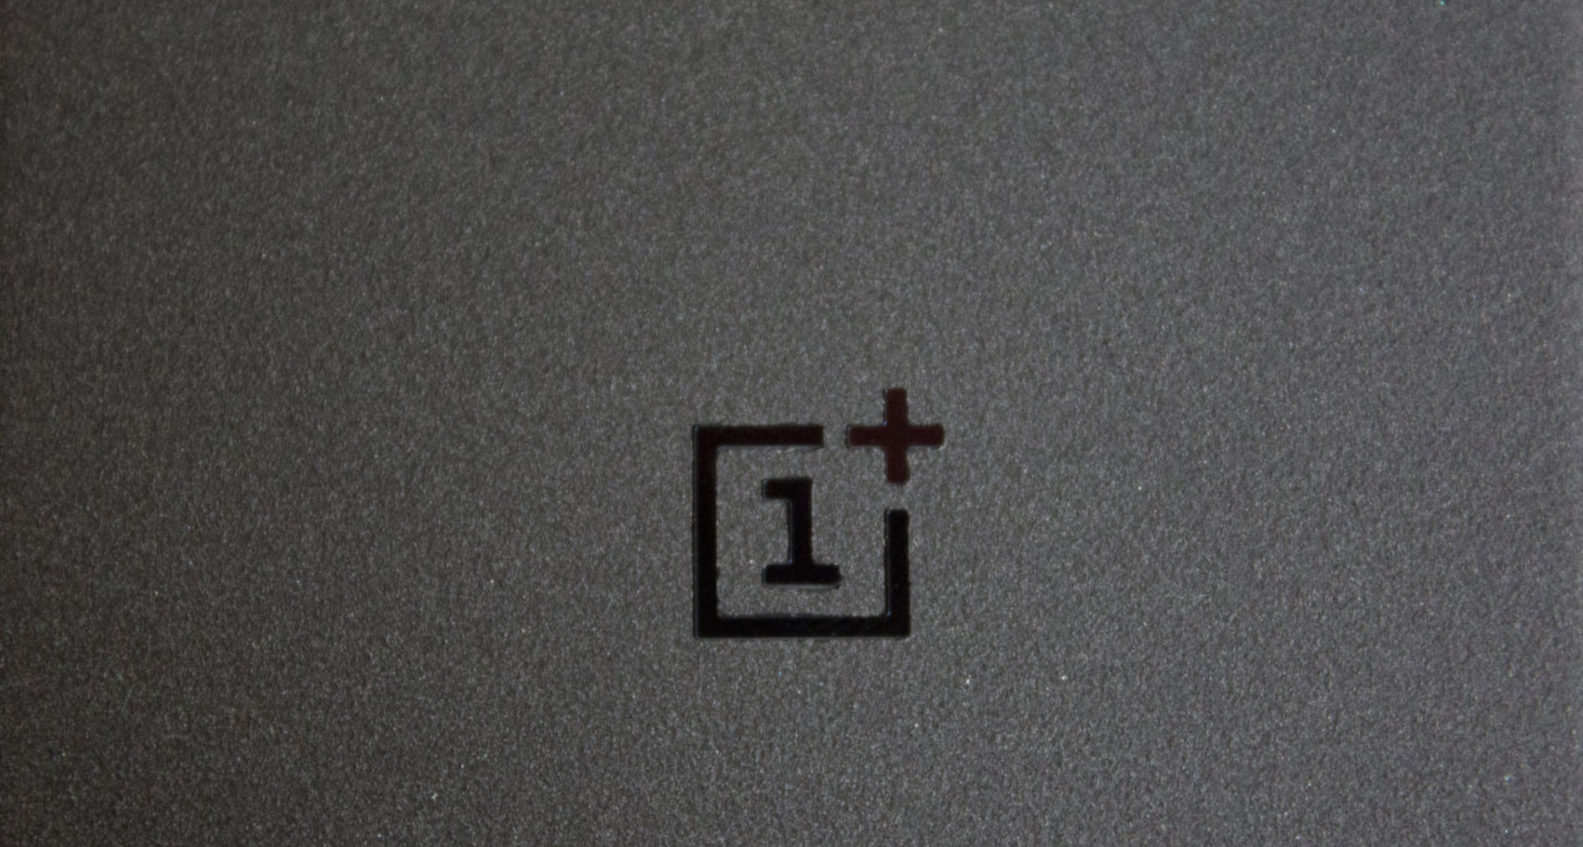 One Plus 5 Specifications, Release Date, Images, and Price at a Glance